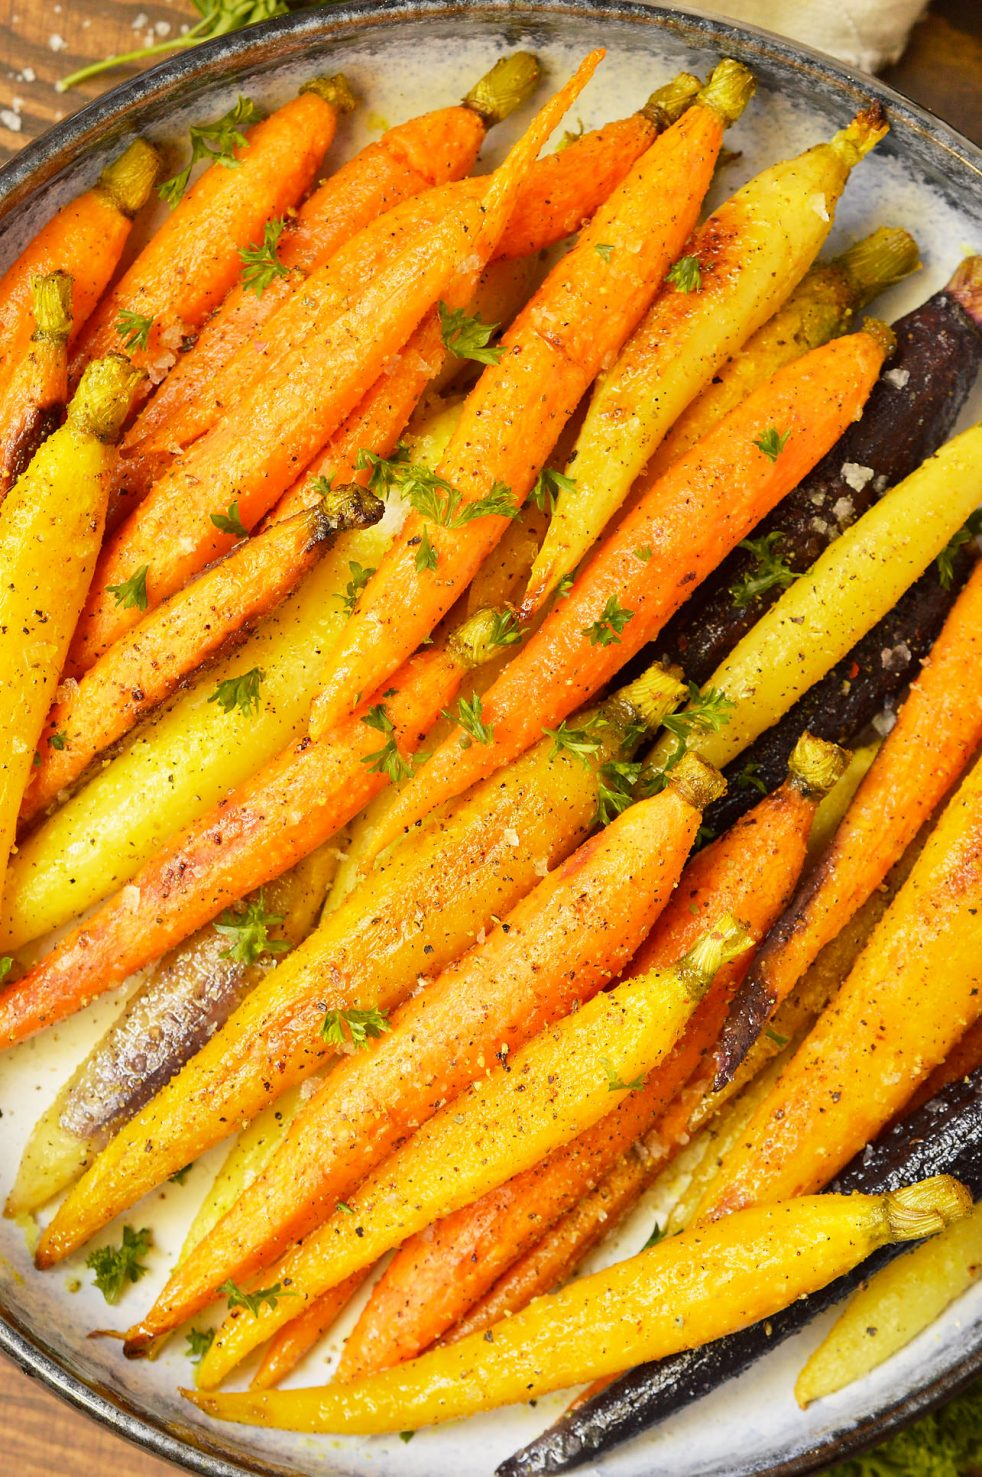 Save some time and make an easy holiday side dish. These Oven Roasted Carrots are a super simple side for your holiday menu or with a weeknight dinner. Rainbow carrots spiced with Adobo seasoning and roasted in the oven. This is a Whole 30 compliant Paleo recipe. #paleorecipe #whole30recipe #roastedcarrots #sidedish #vegan #vegetarian